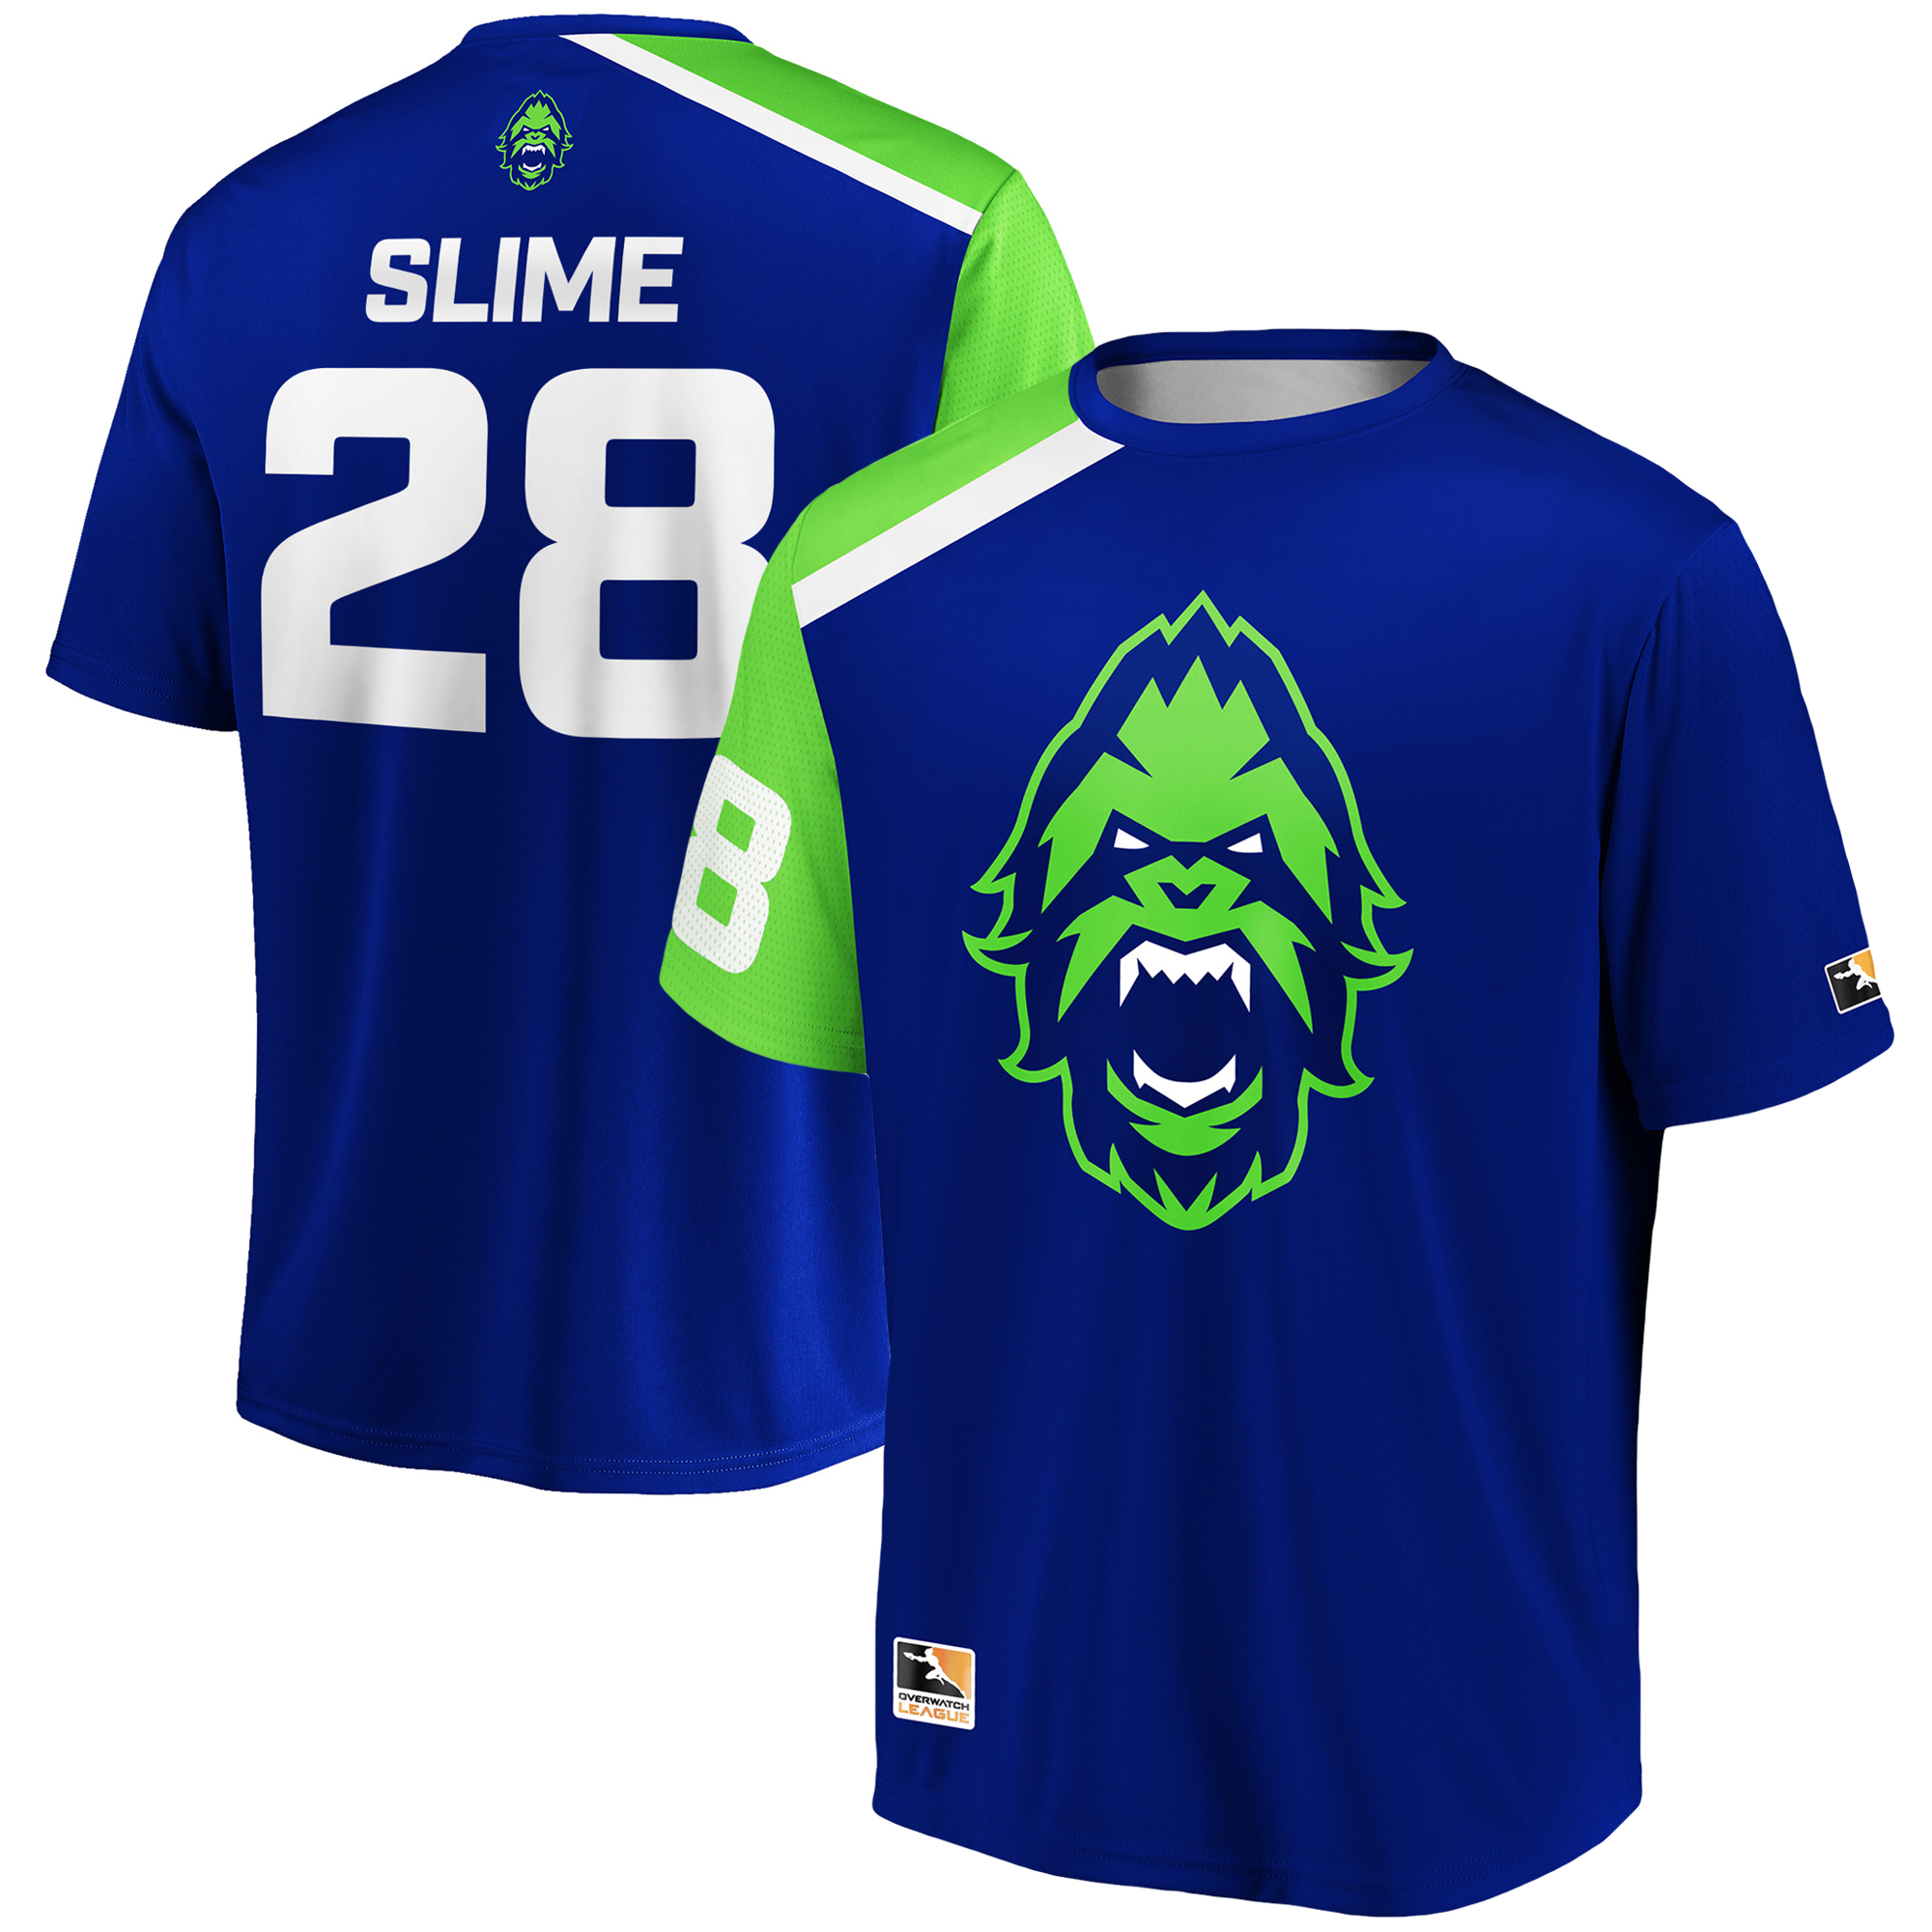 SLIME Vancouver Titans Overwatch League Replica Home Jersey - Blue